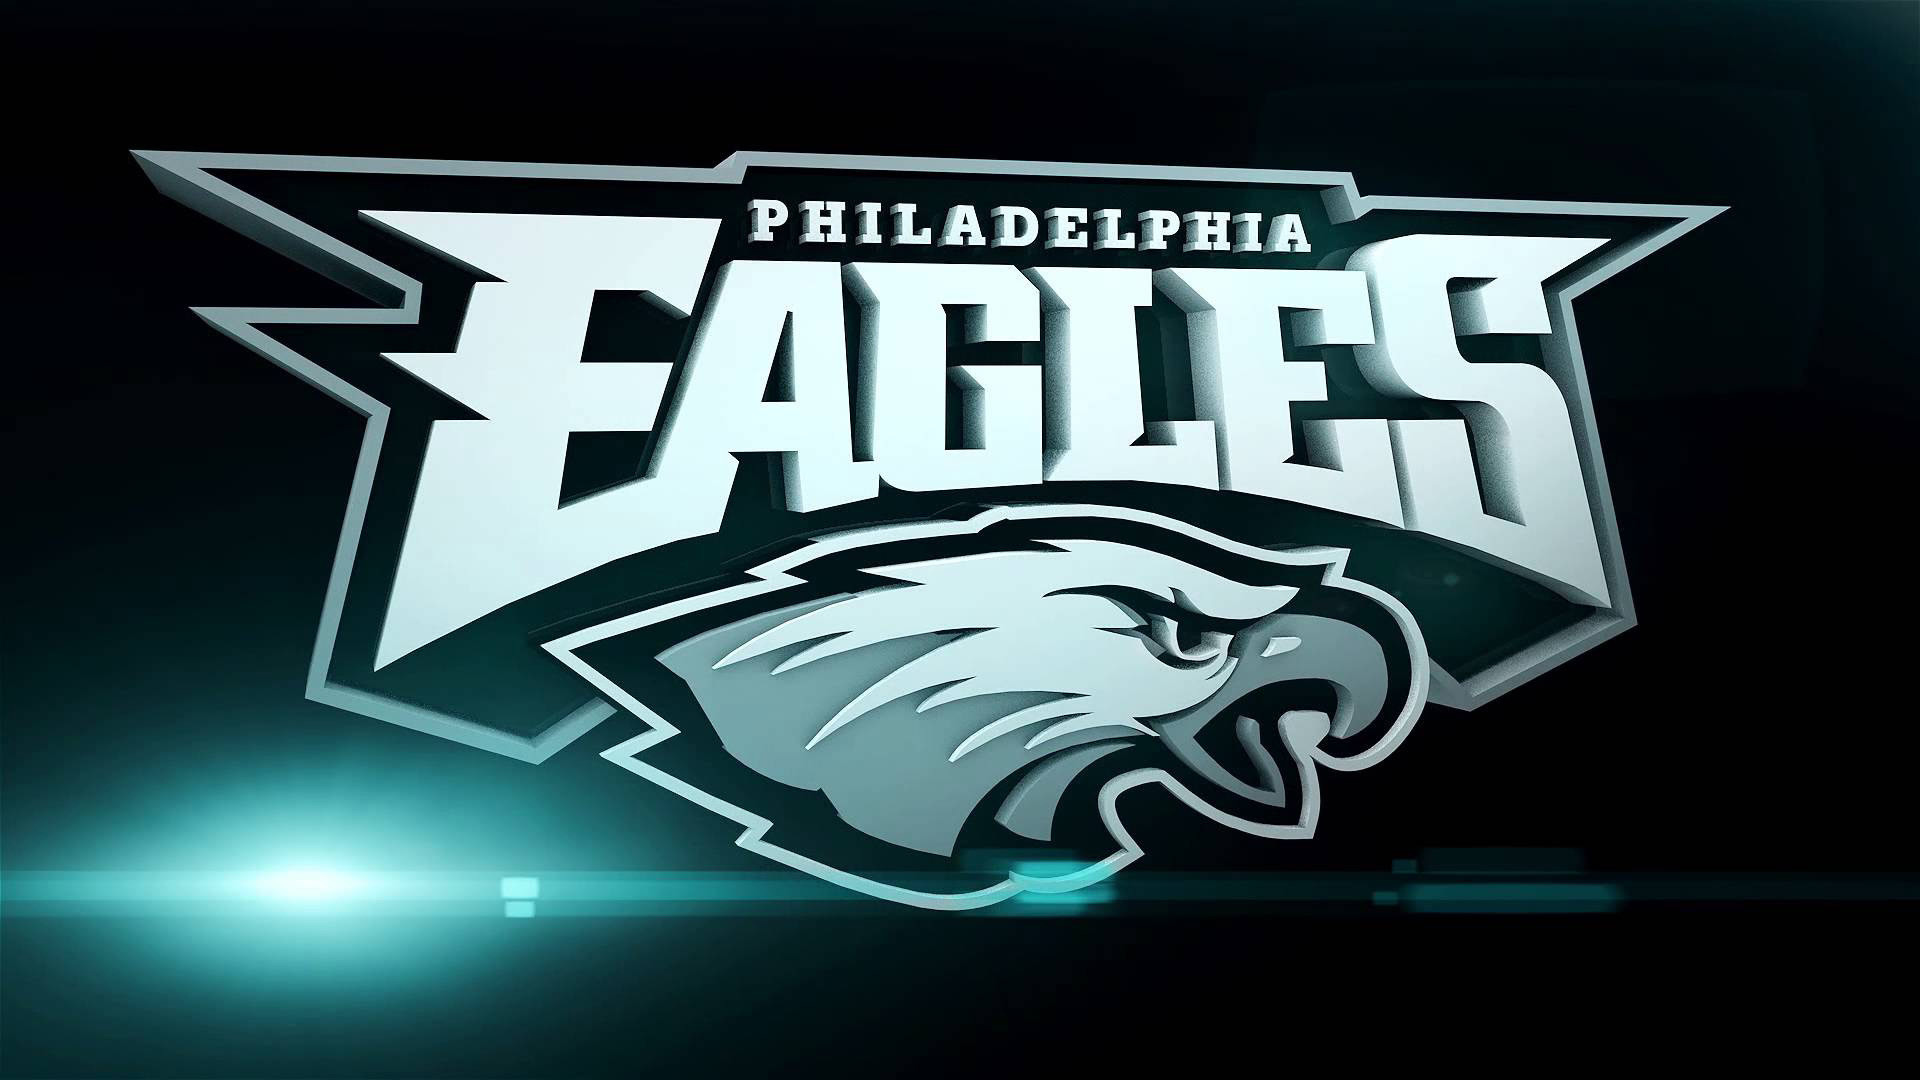 Philadelphia Eagles Wallpapers   Philadelphia Eagles Wallpaper Hd 1920x1080